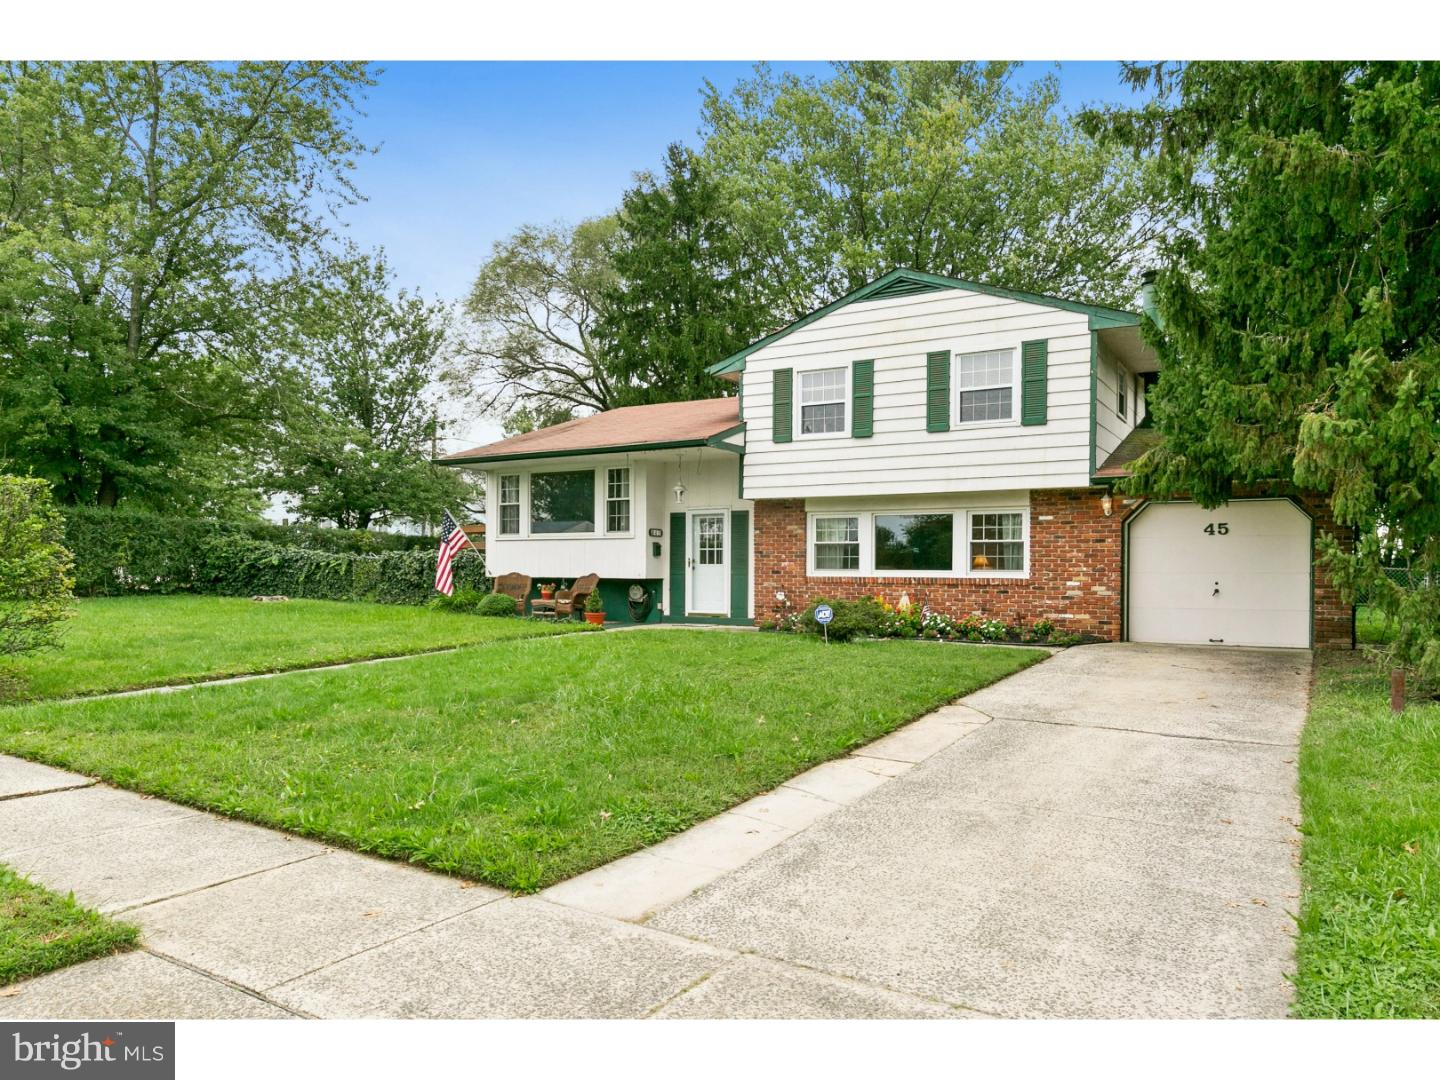 Single Family Home for Sale at 45 RUTGERS Drive Delran Township, New Jersey 08075 United StatesMunicipality: Delran